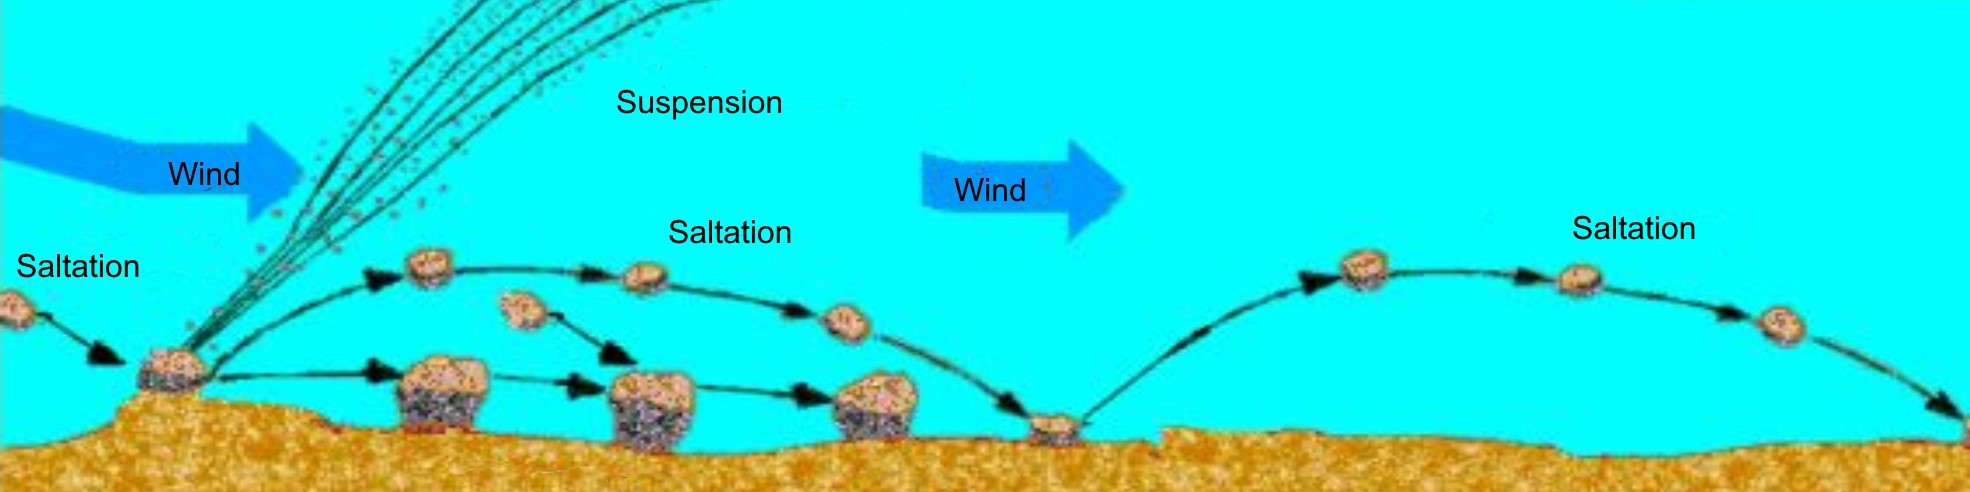 This diagram shows a close-up view of different wind erosion processes including saltation and suspension.